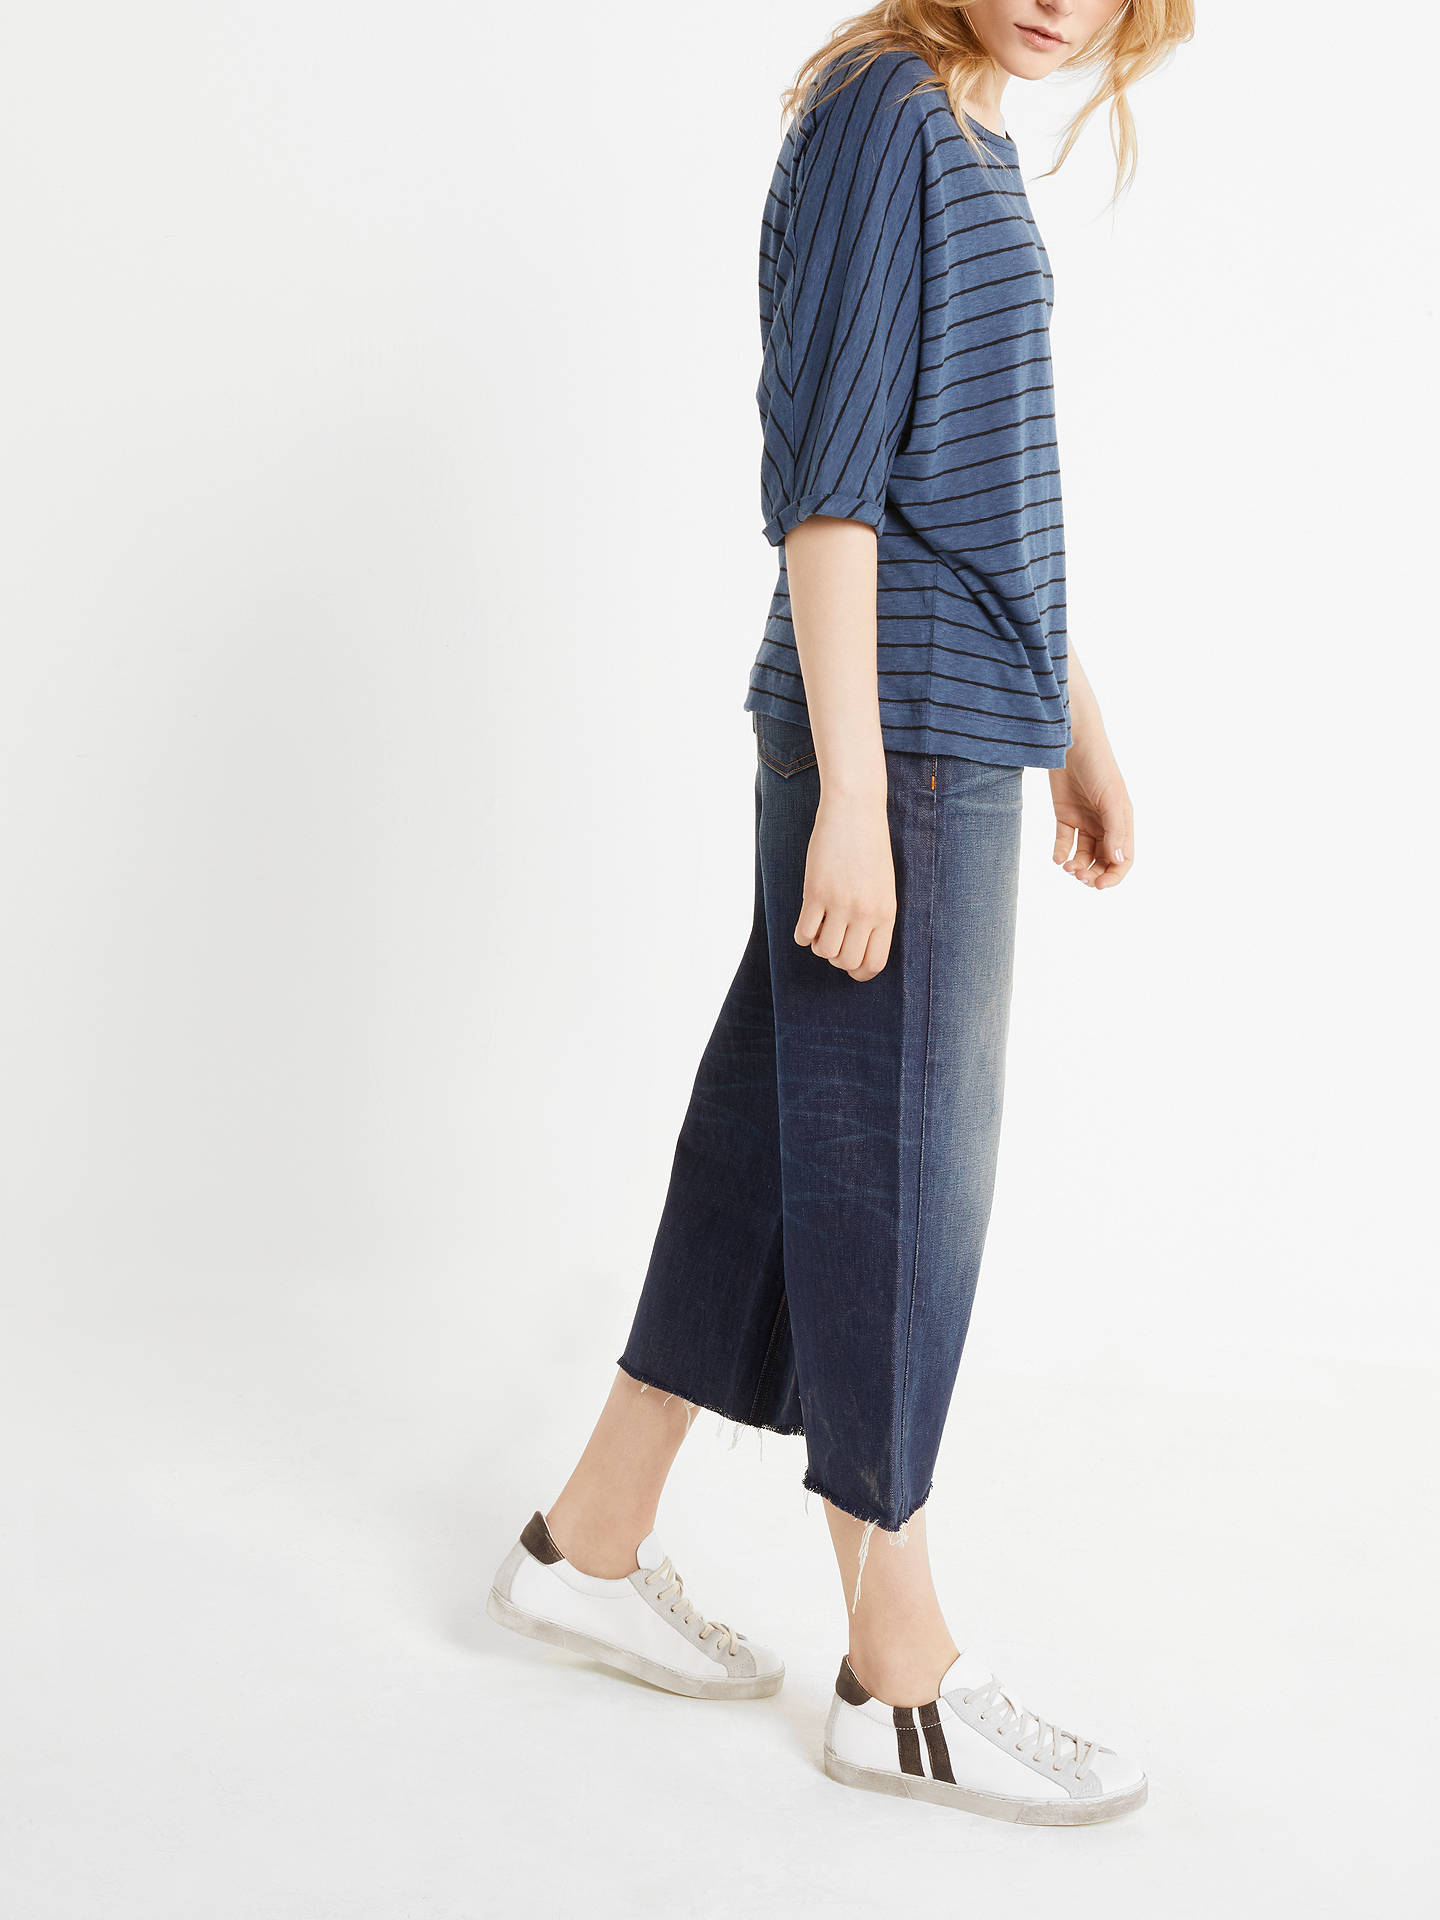 BuyAND/OR Stripe Seam Detail T-Shirt, Blue/Black, 8 Online at johnlewis.com